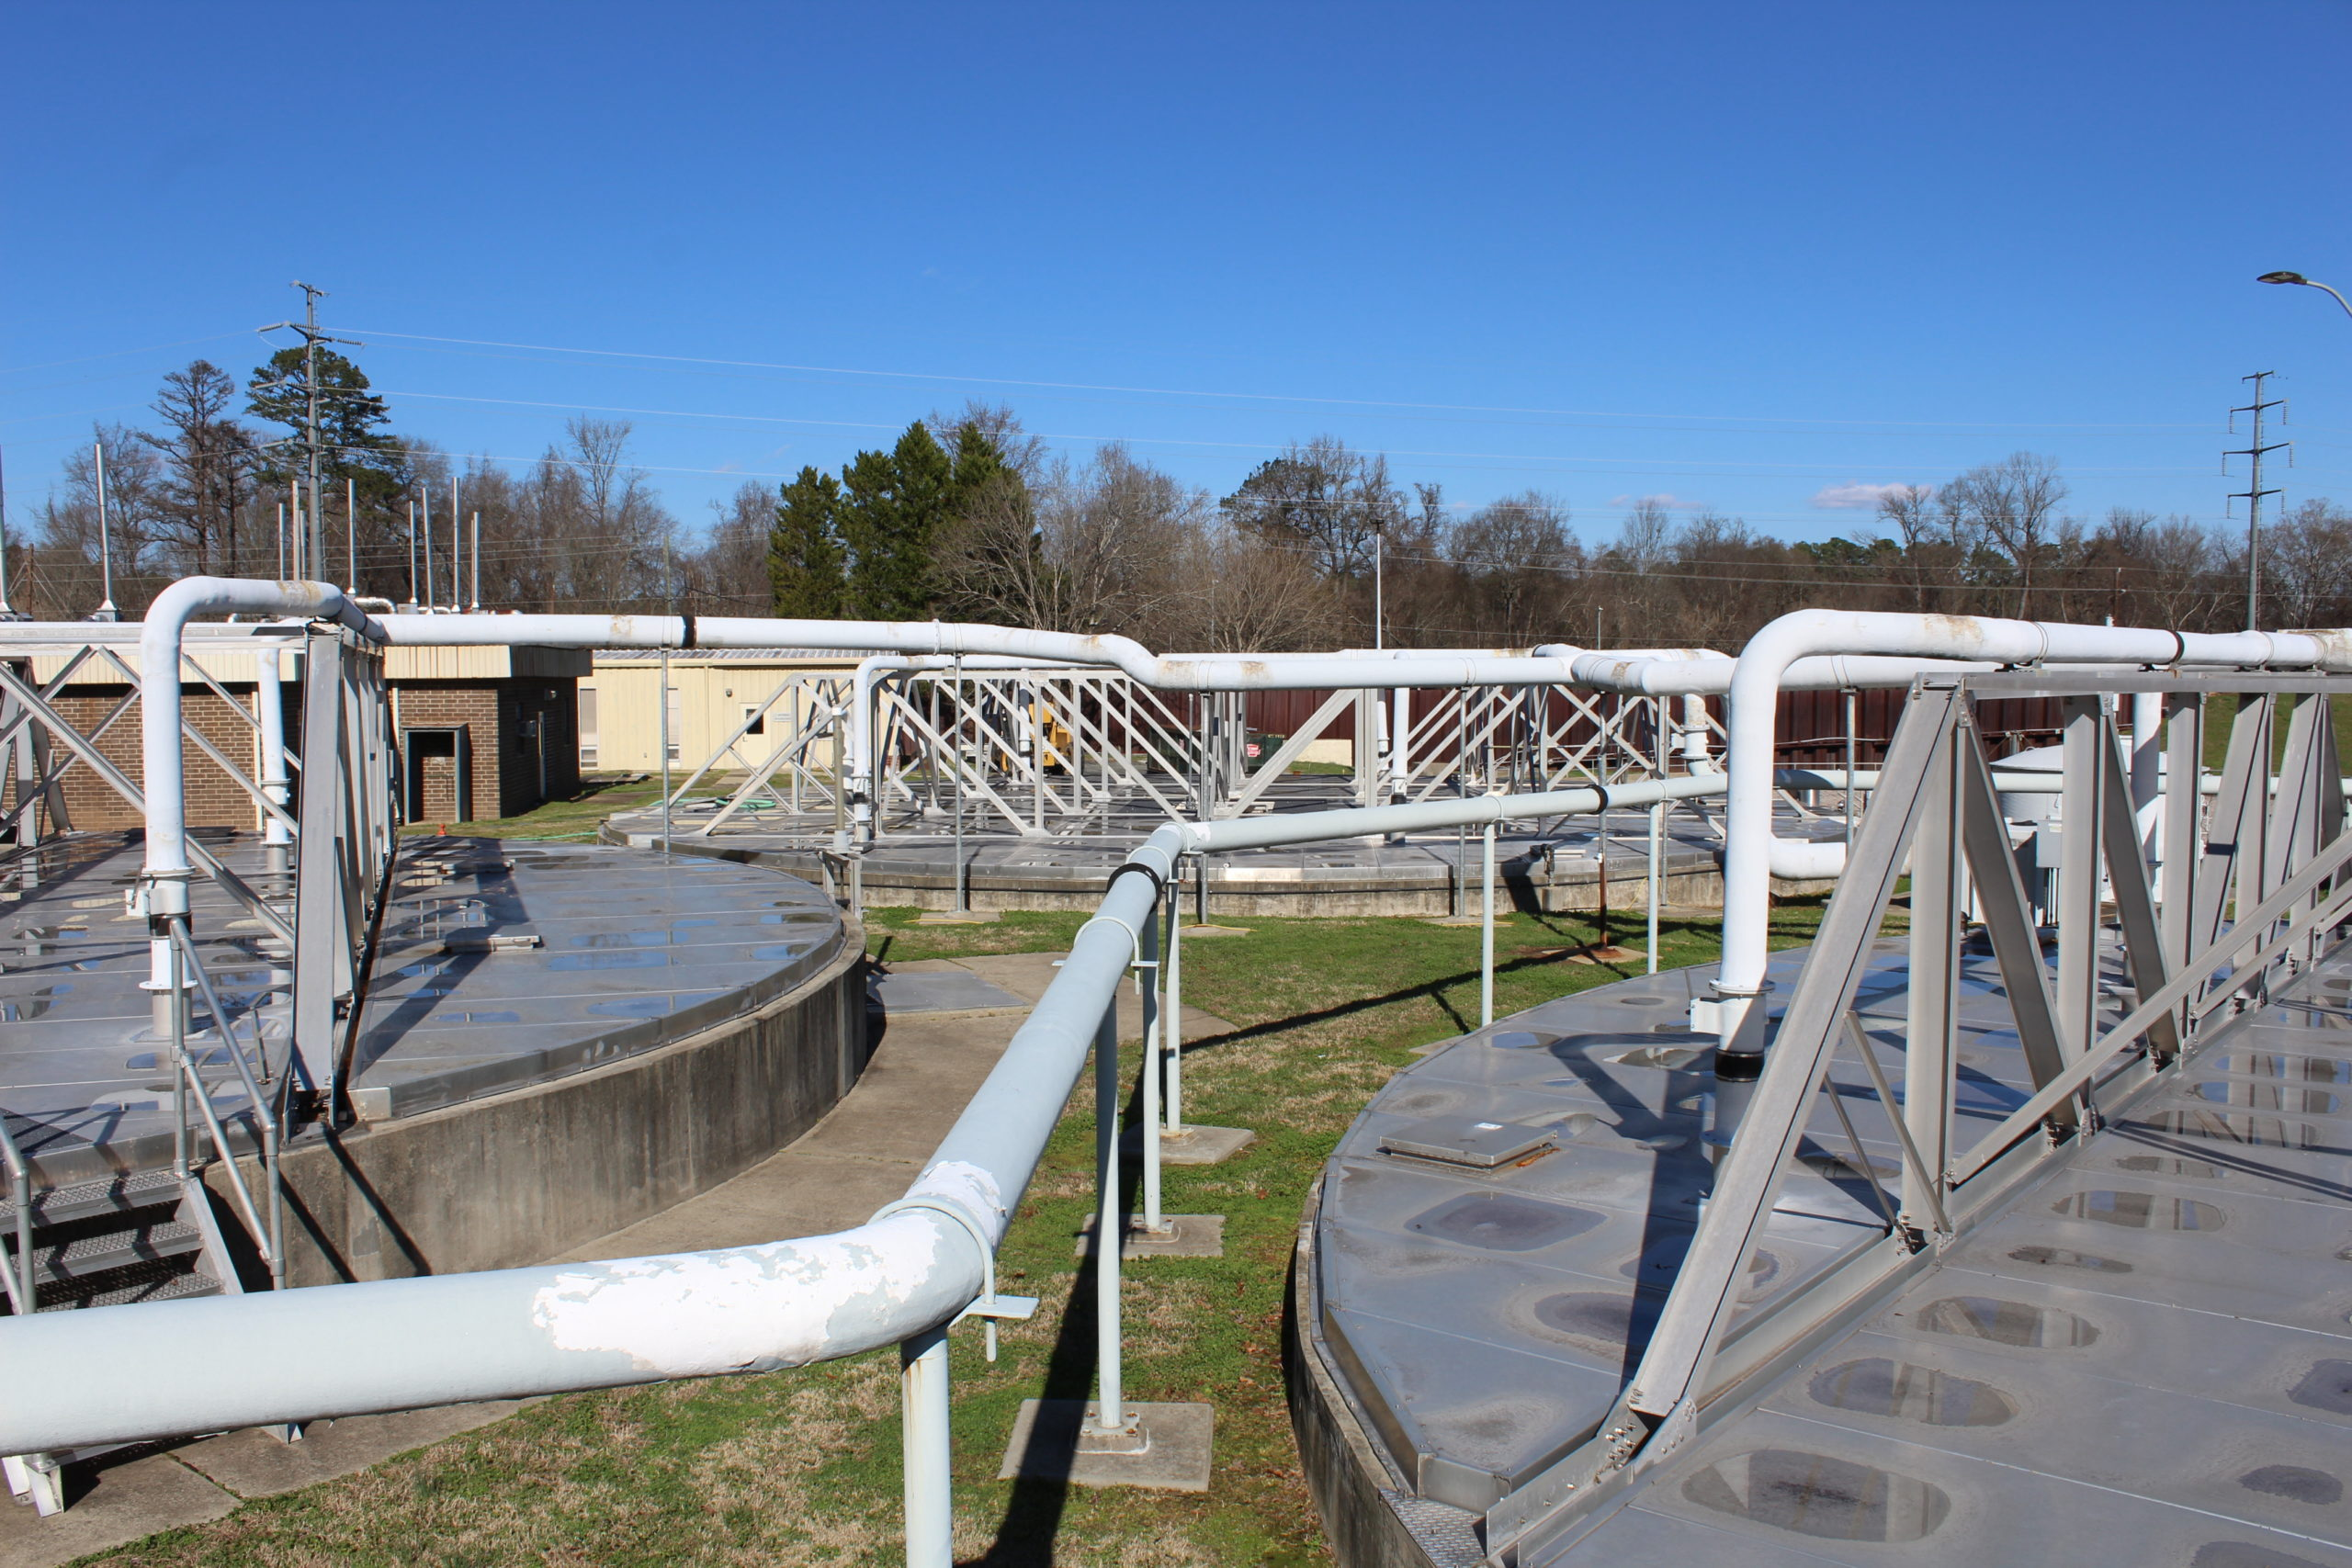 Primary Clarification at Wastewater Treatment Plant